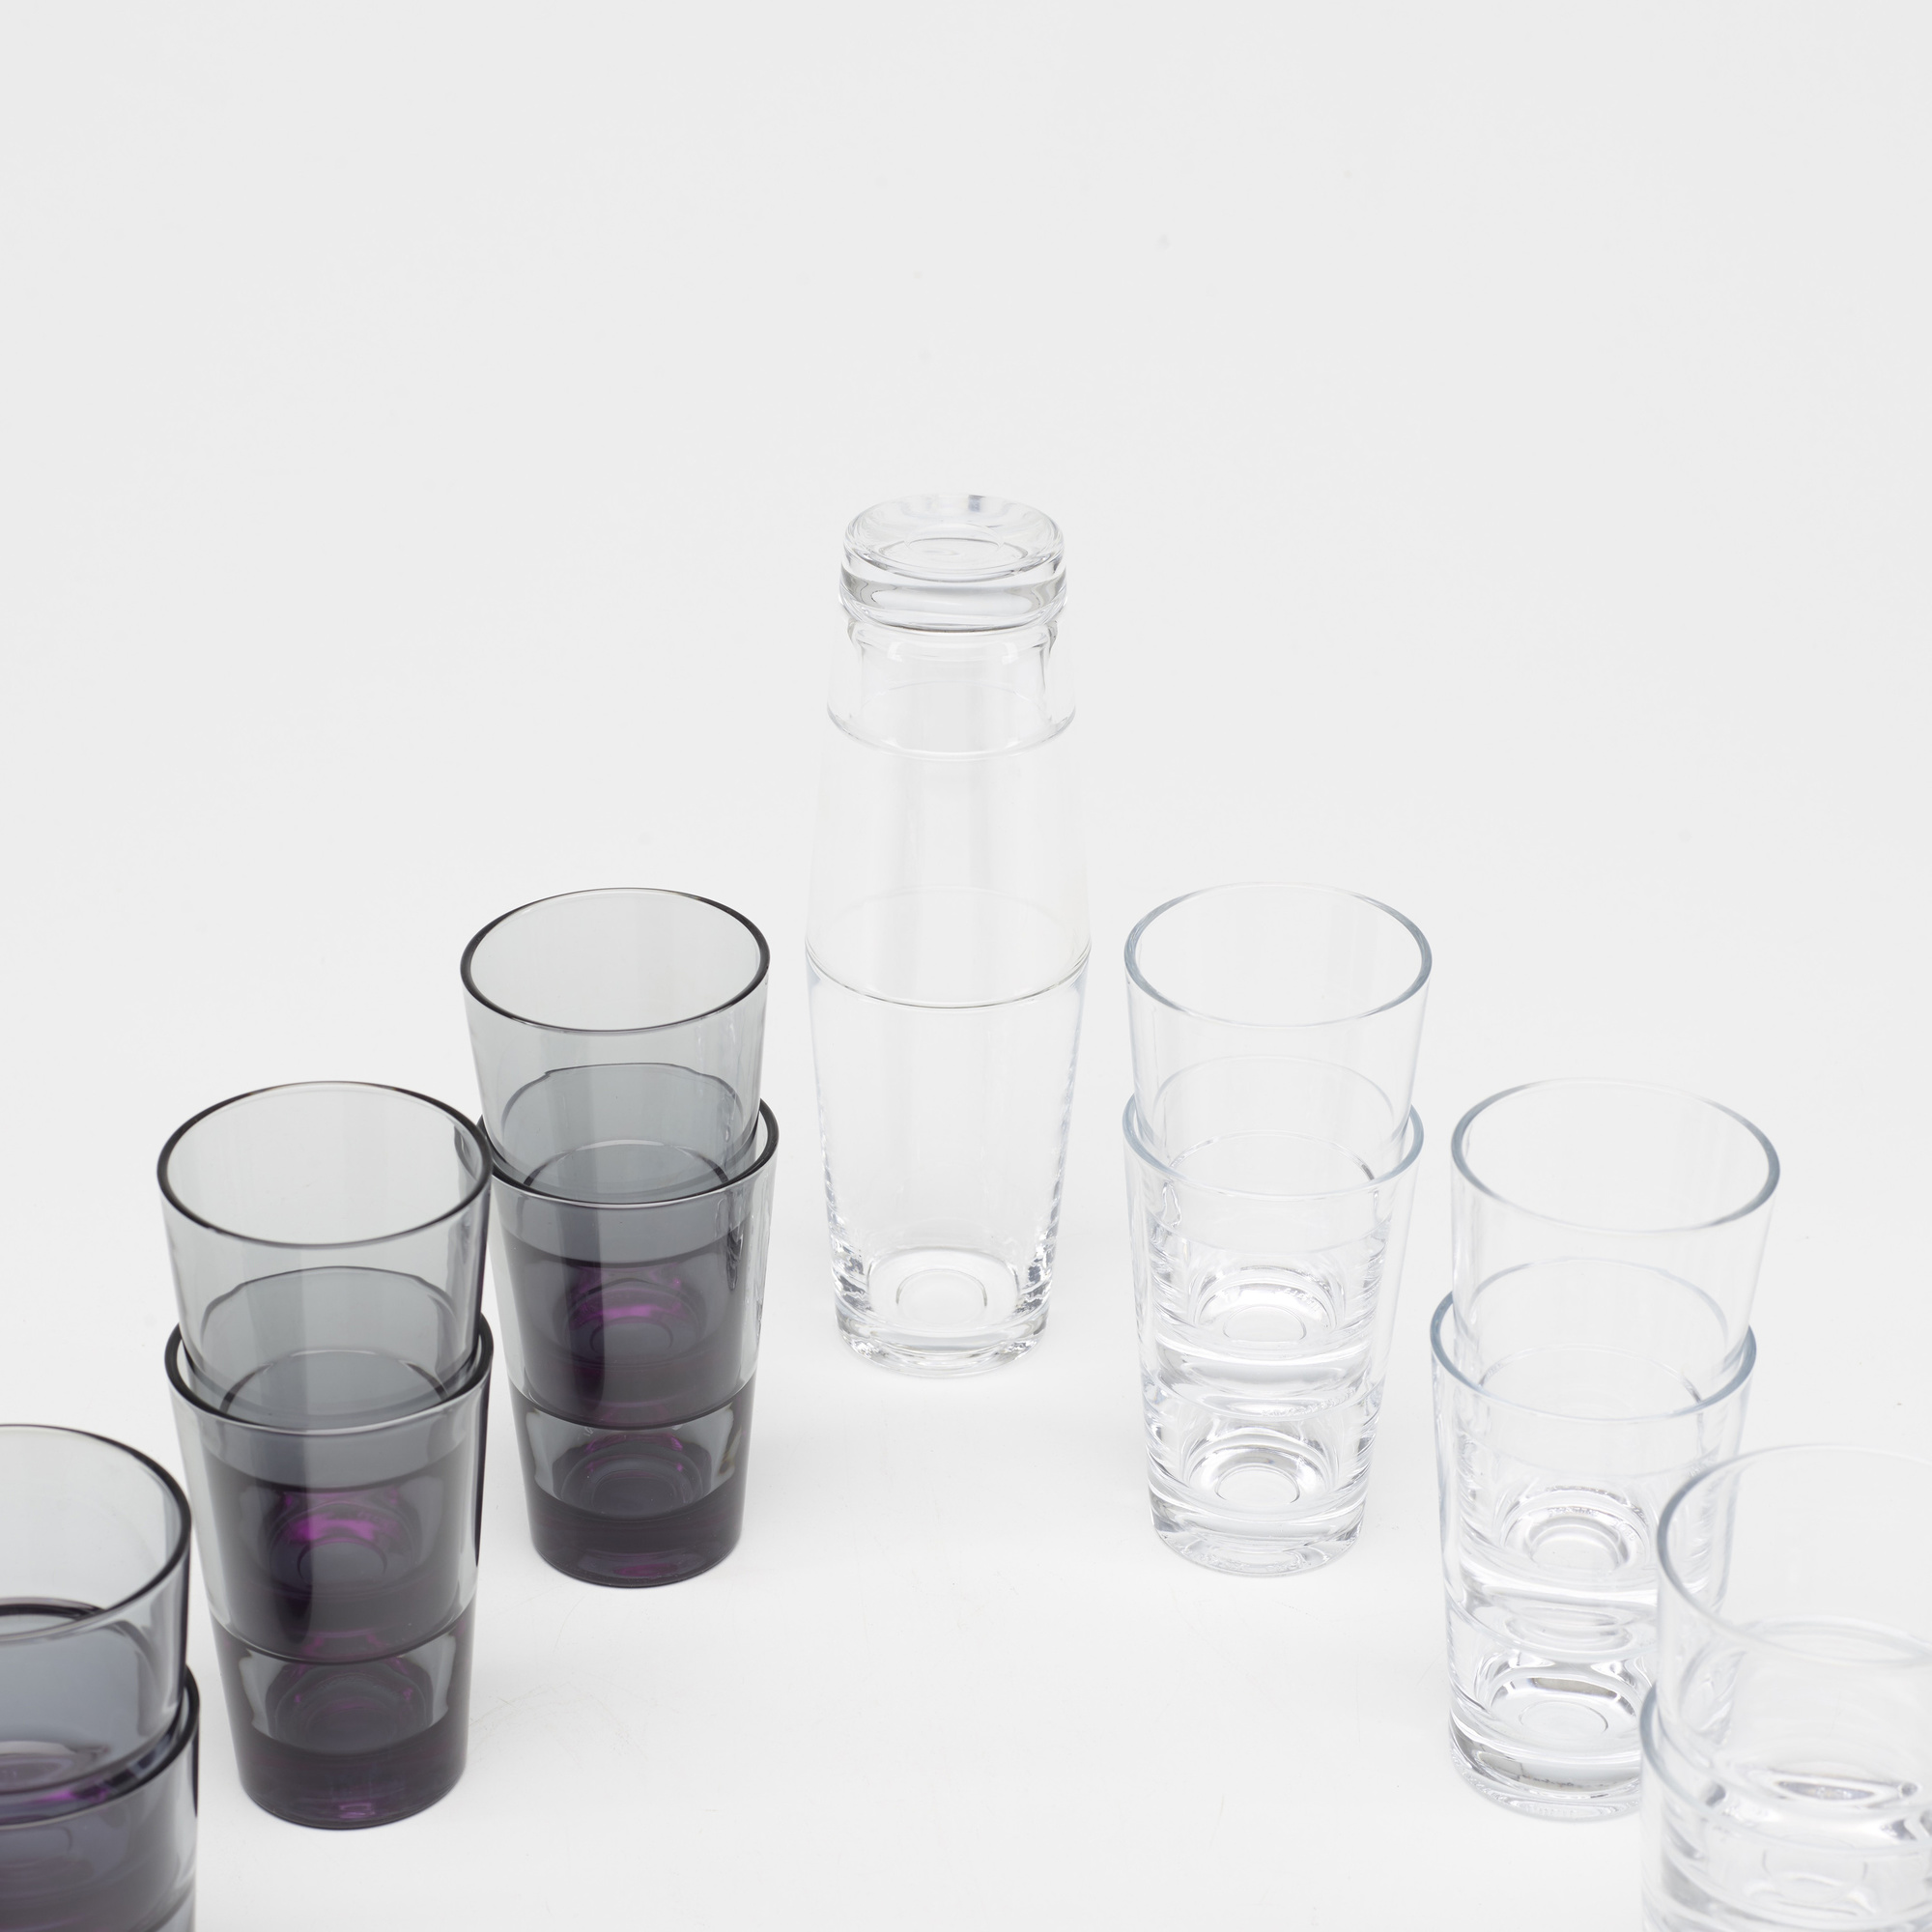 313: Konstantin Grcic / collection of twenty Relations glasses and cocktail shaker (2 of 2)